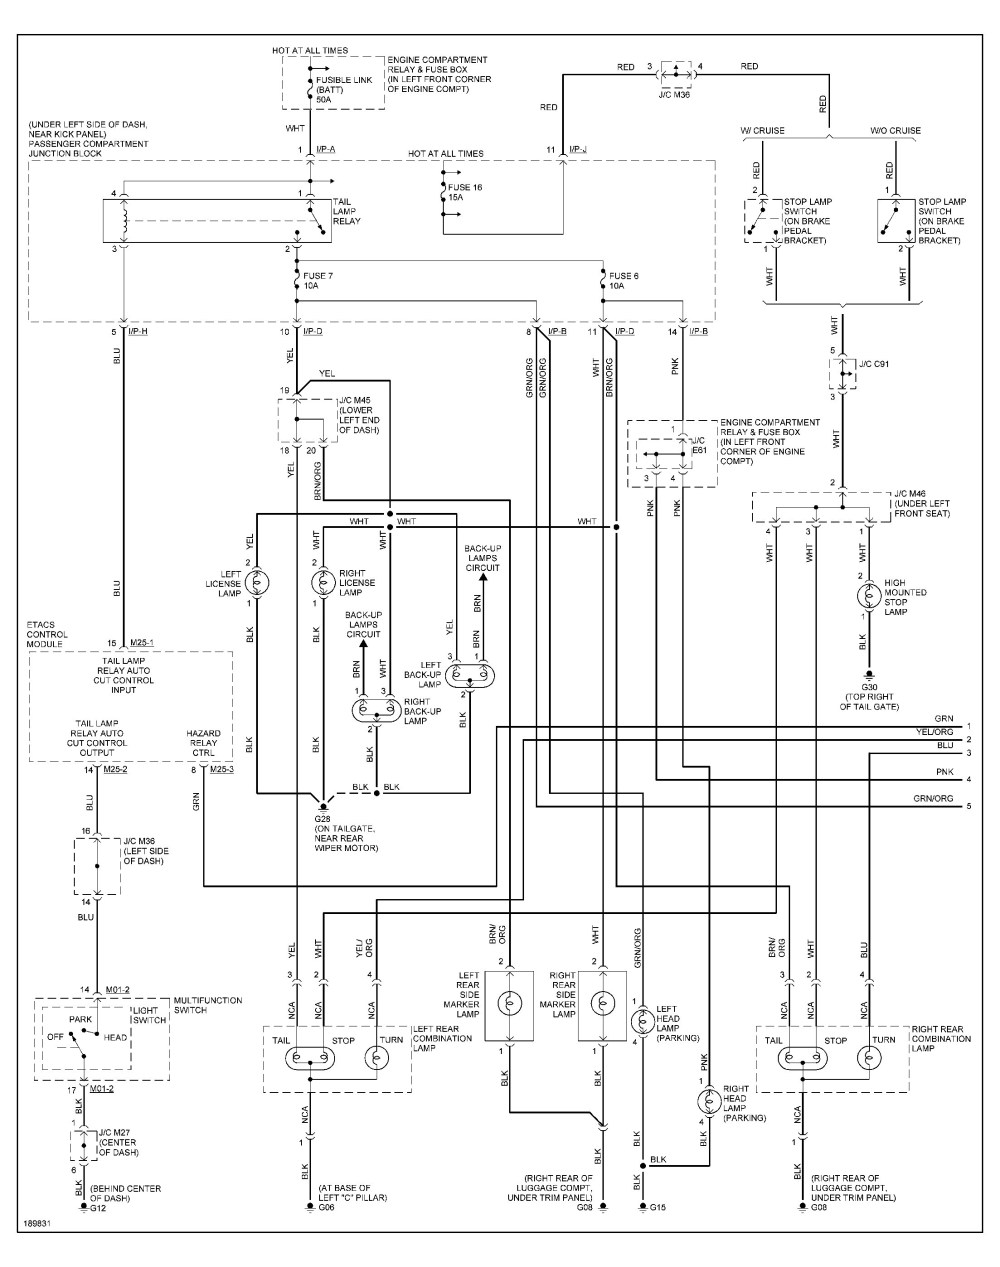 medium resolution of tagged with hyundai accent 03 wiringdiagram 2012 hyundai accent 2012 hyundai veloster wiring diagram 2012 hyundai wiring diagram